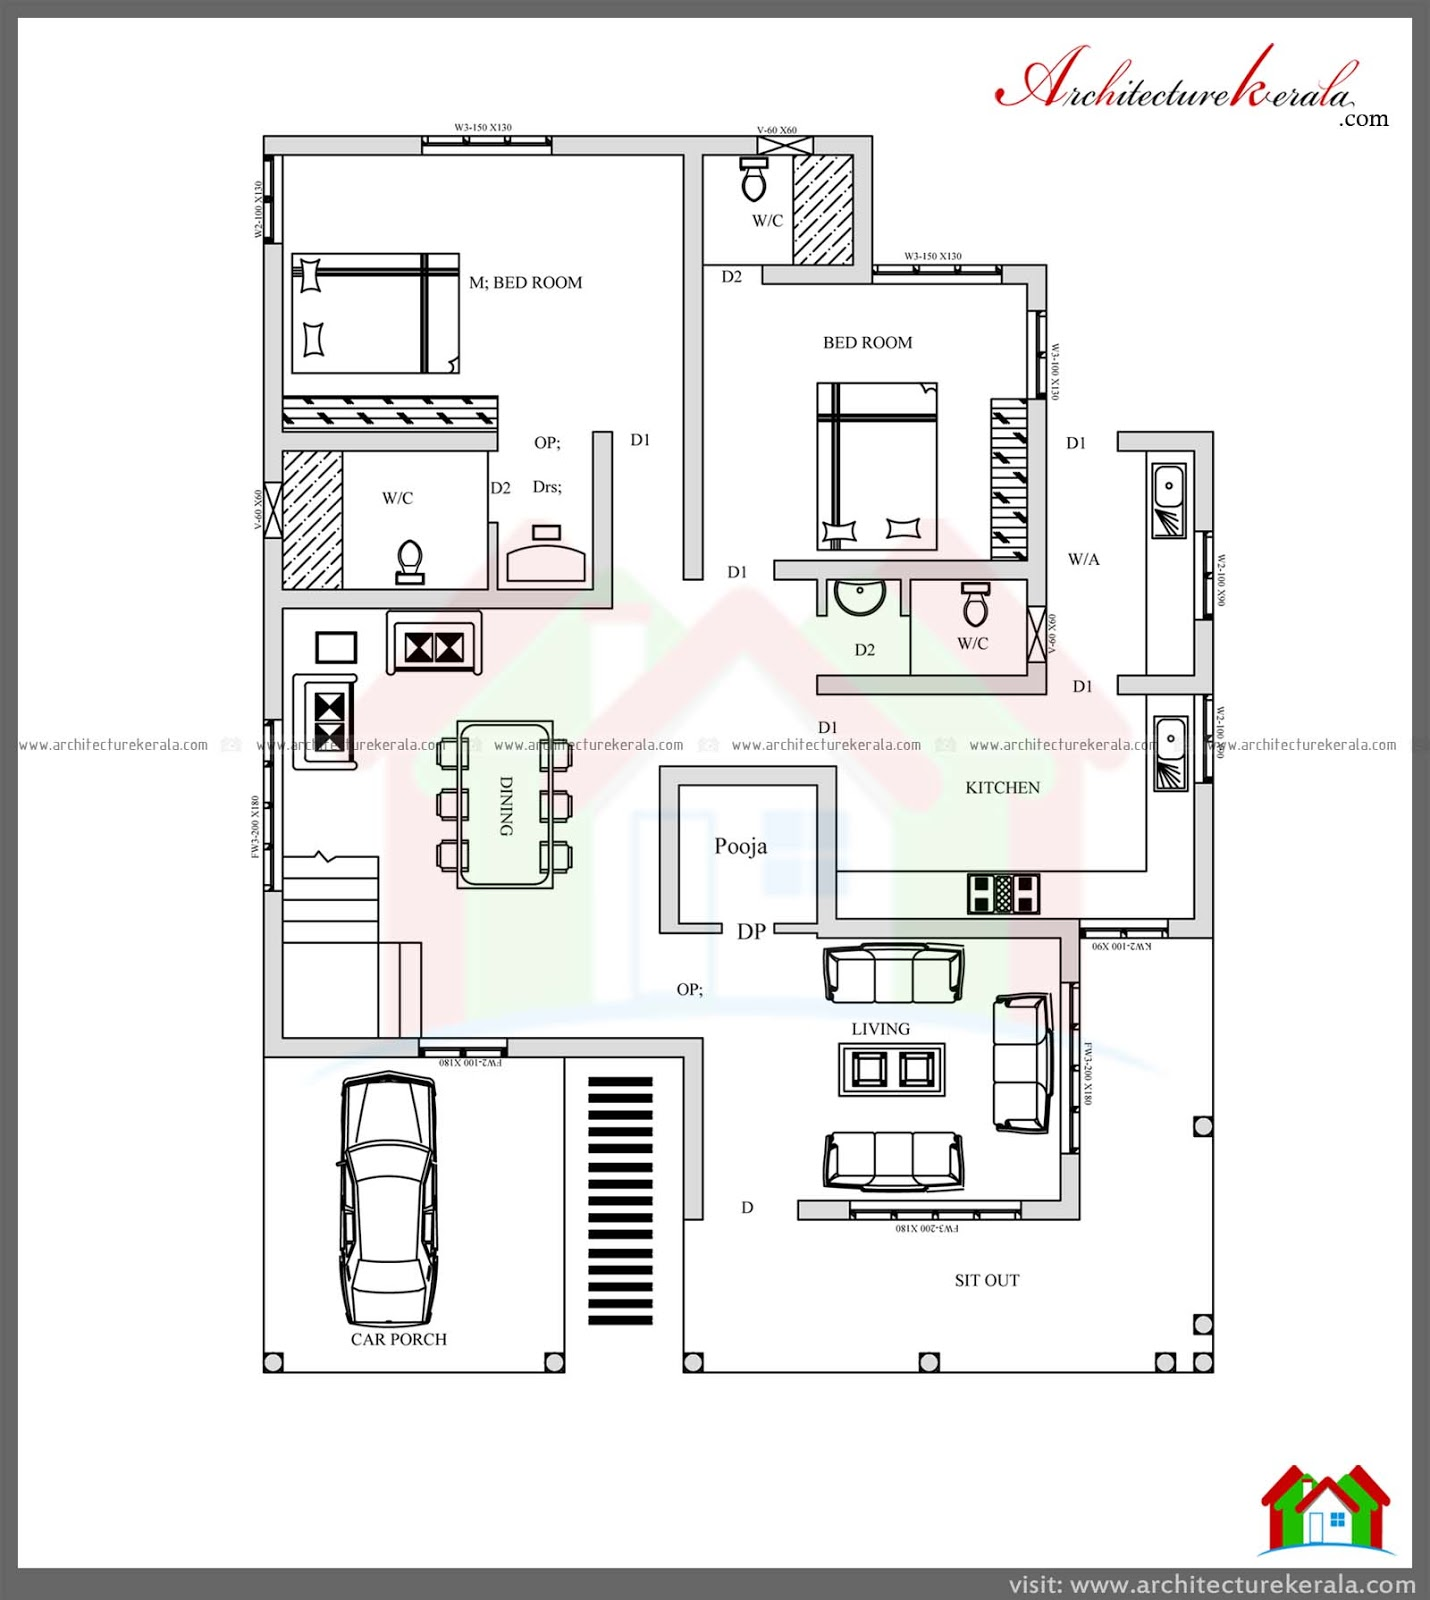 4 bed house plan with pooja room architecture kerala for 4 bedroom kerala house plans and elevations